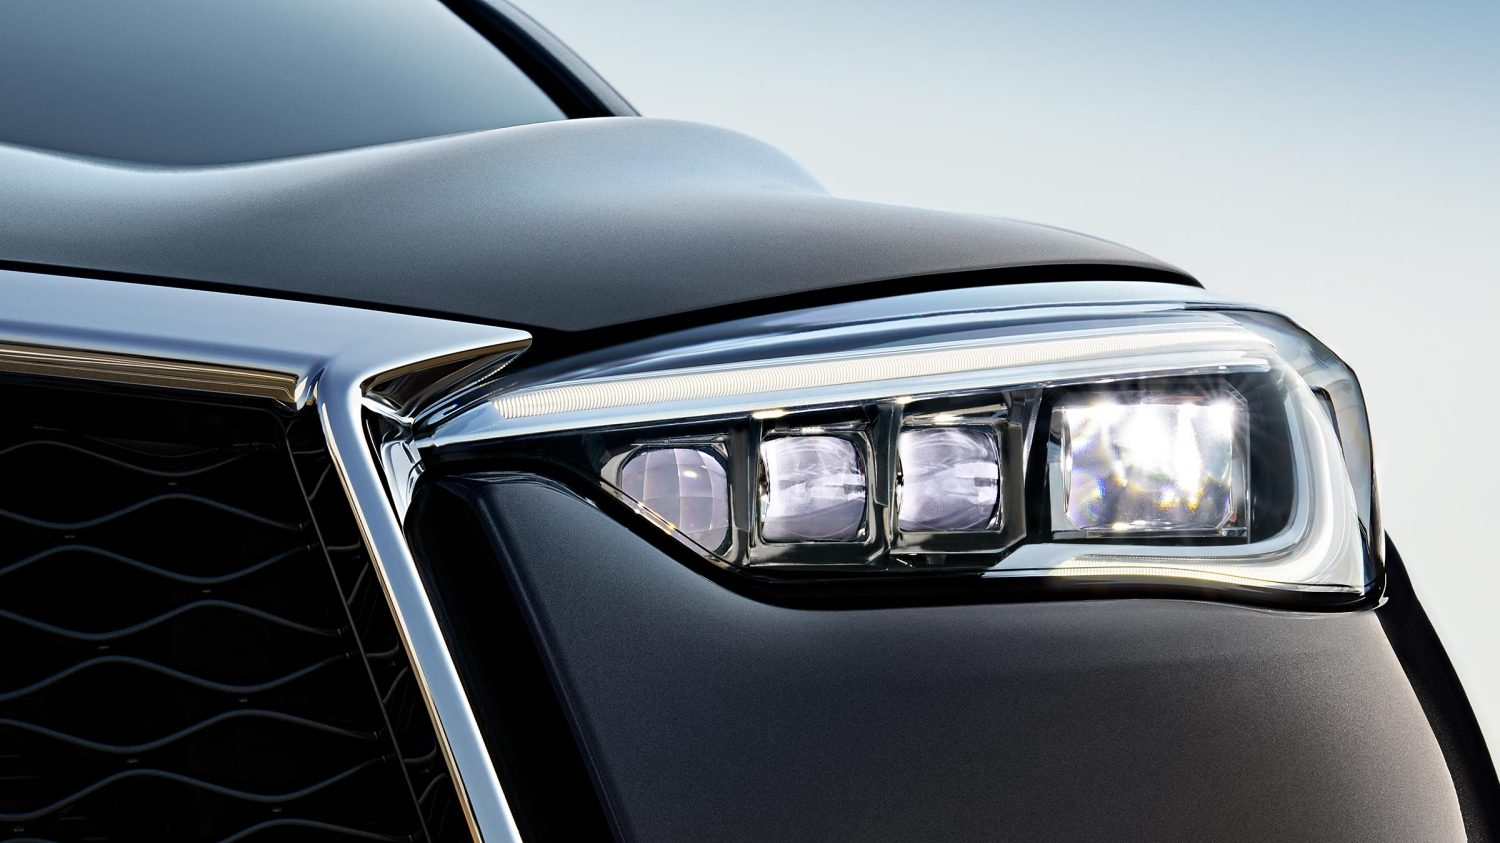 2019 INFINITI QX50 Luxury Crossover LED Headlights